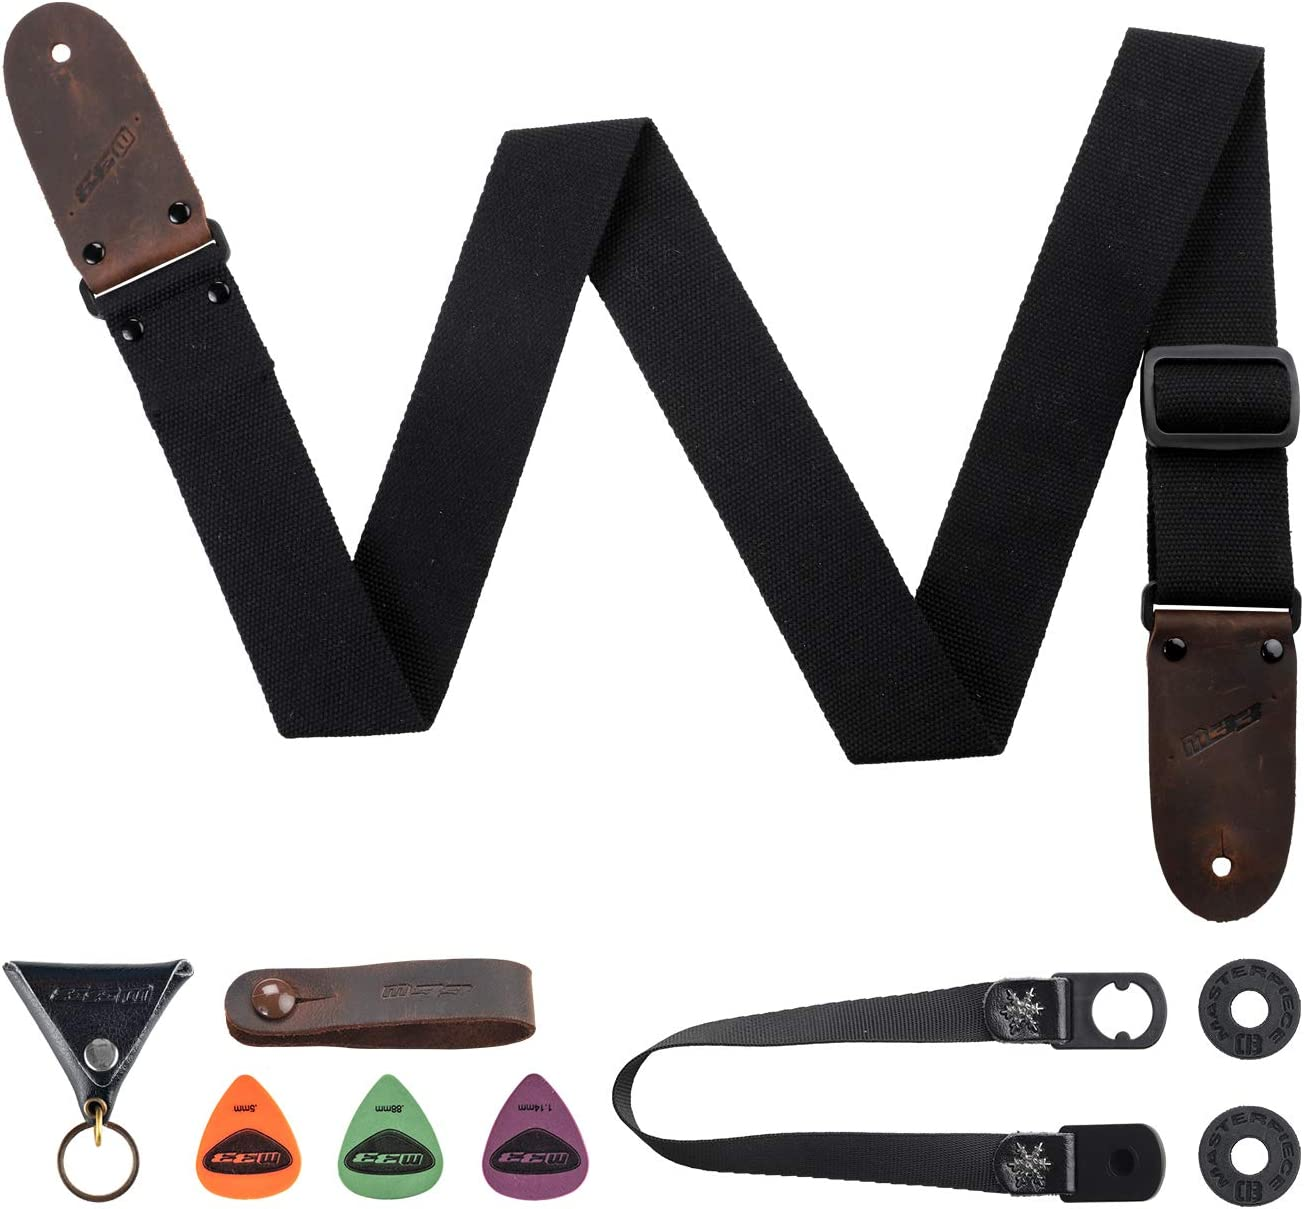 M33 Panda Guitar Strap Leather Ends Shoulder Strap Set for Acoustic Electric and Bass Guitars 2 Wide Includes STRAP BUTTON LOCKS 3 PICKS Christmas Gift for Men Women Guitarist